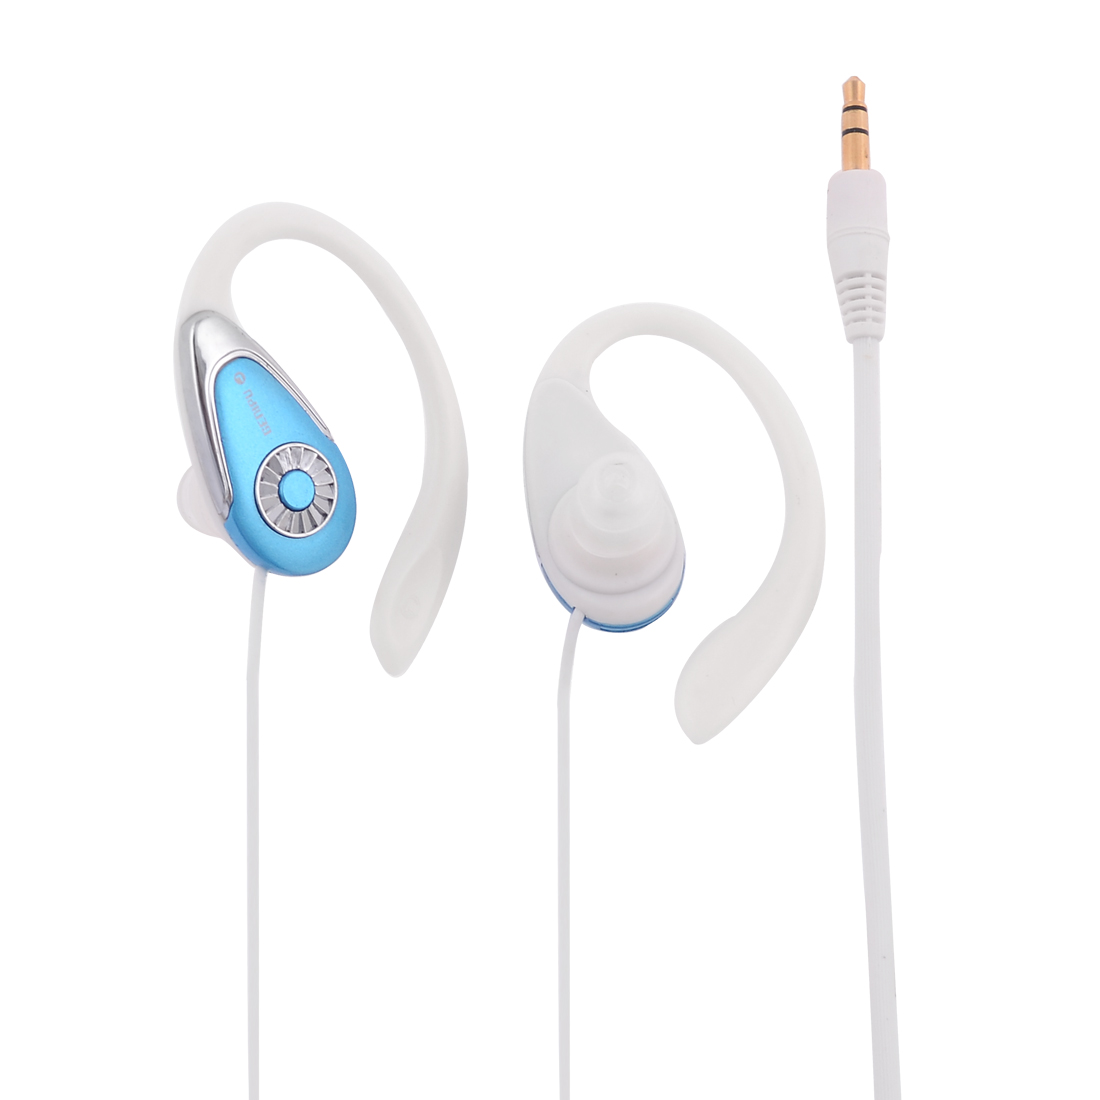 White Blue Soft Cable 3.5mm In Ear Earbuds Earphone for Cell Phone MP3 MP4